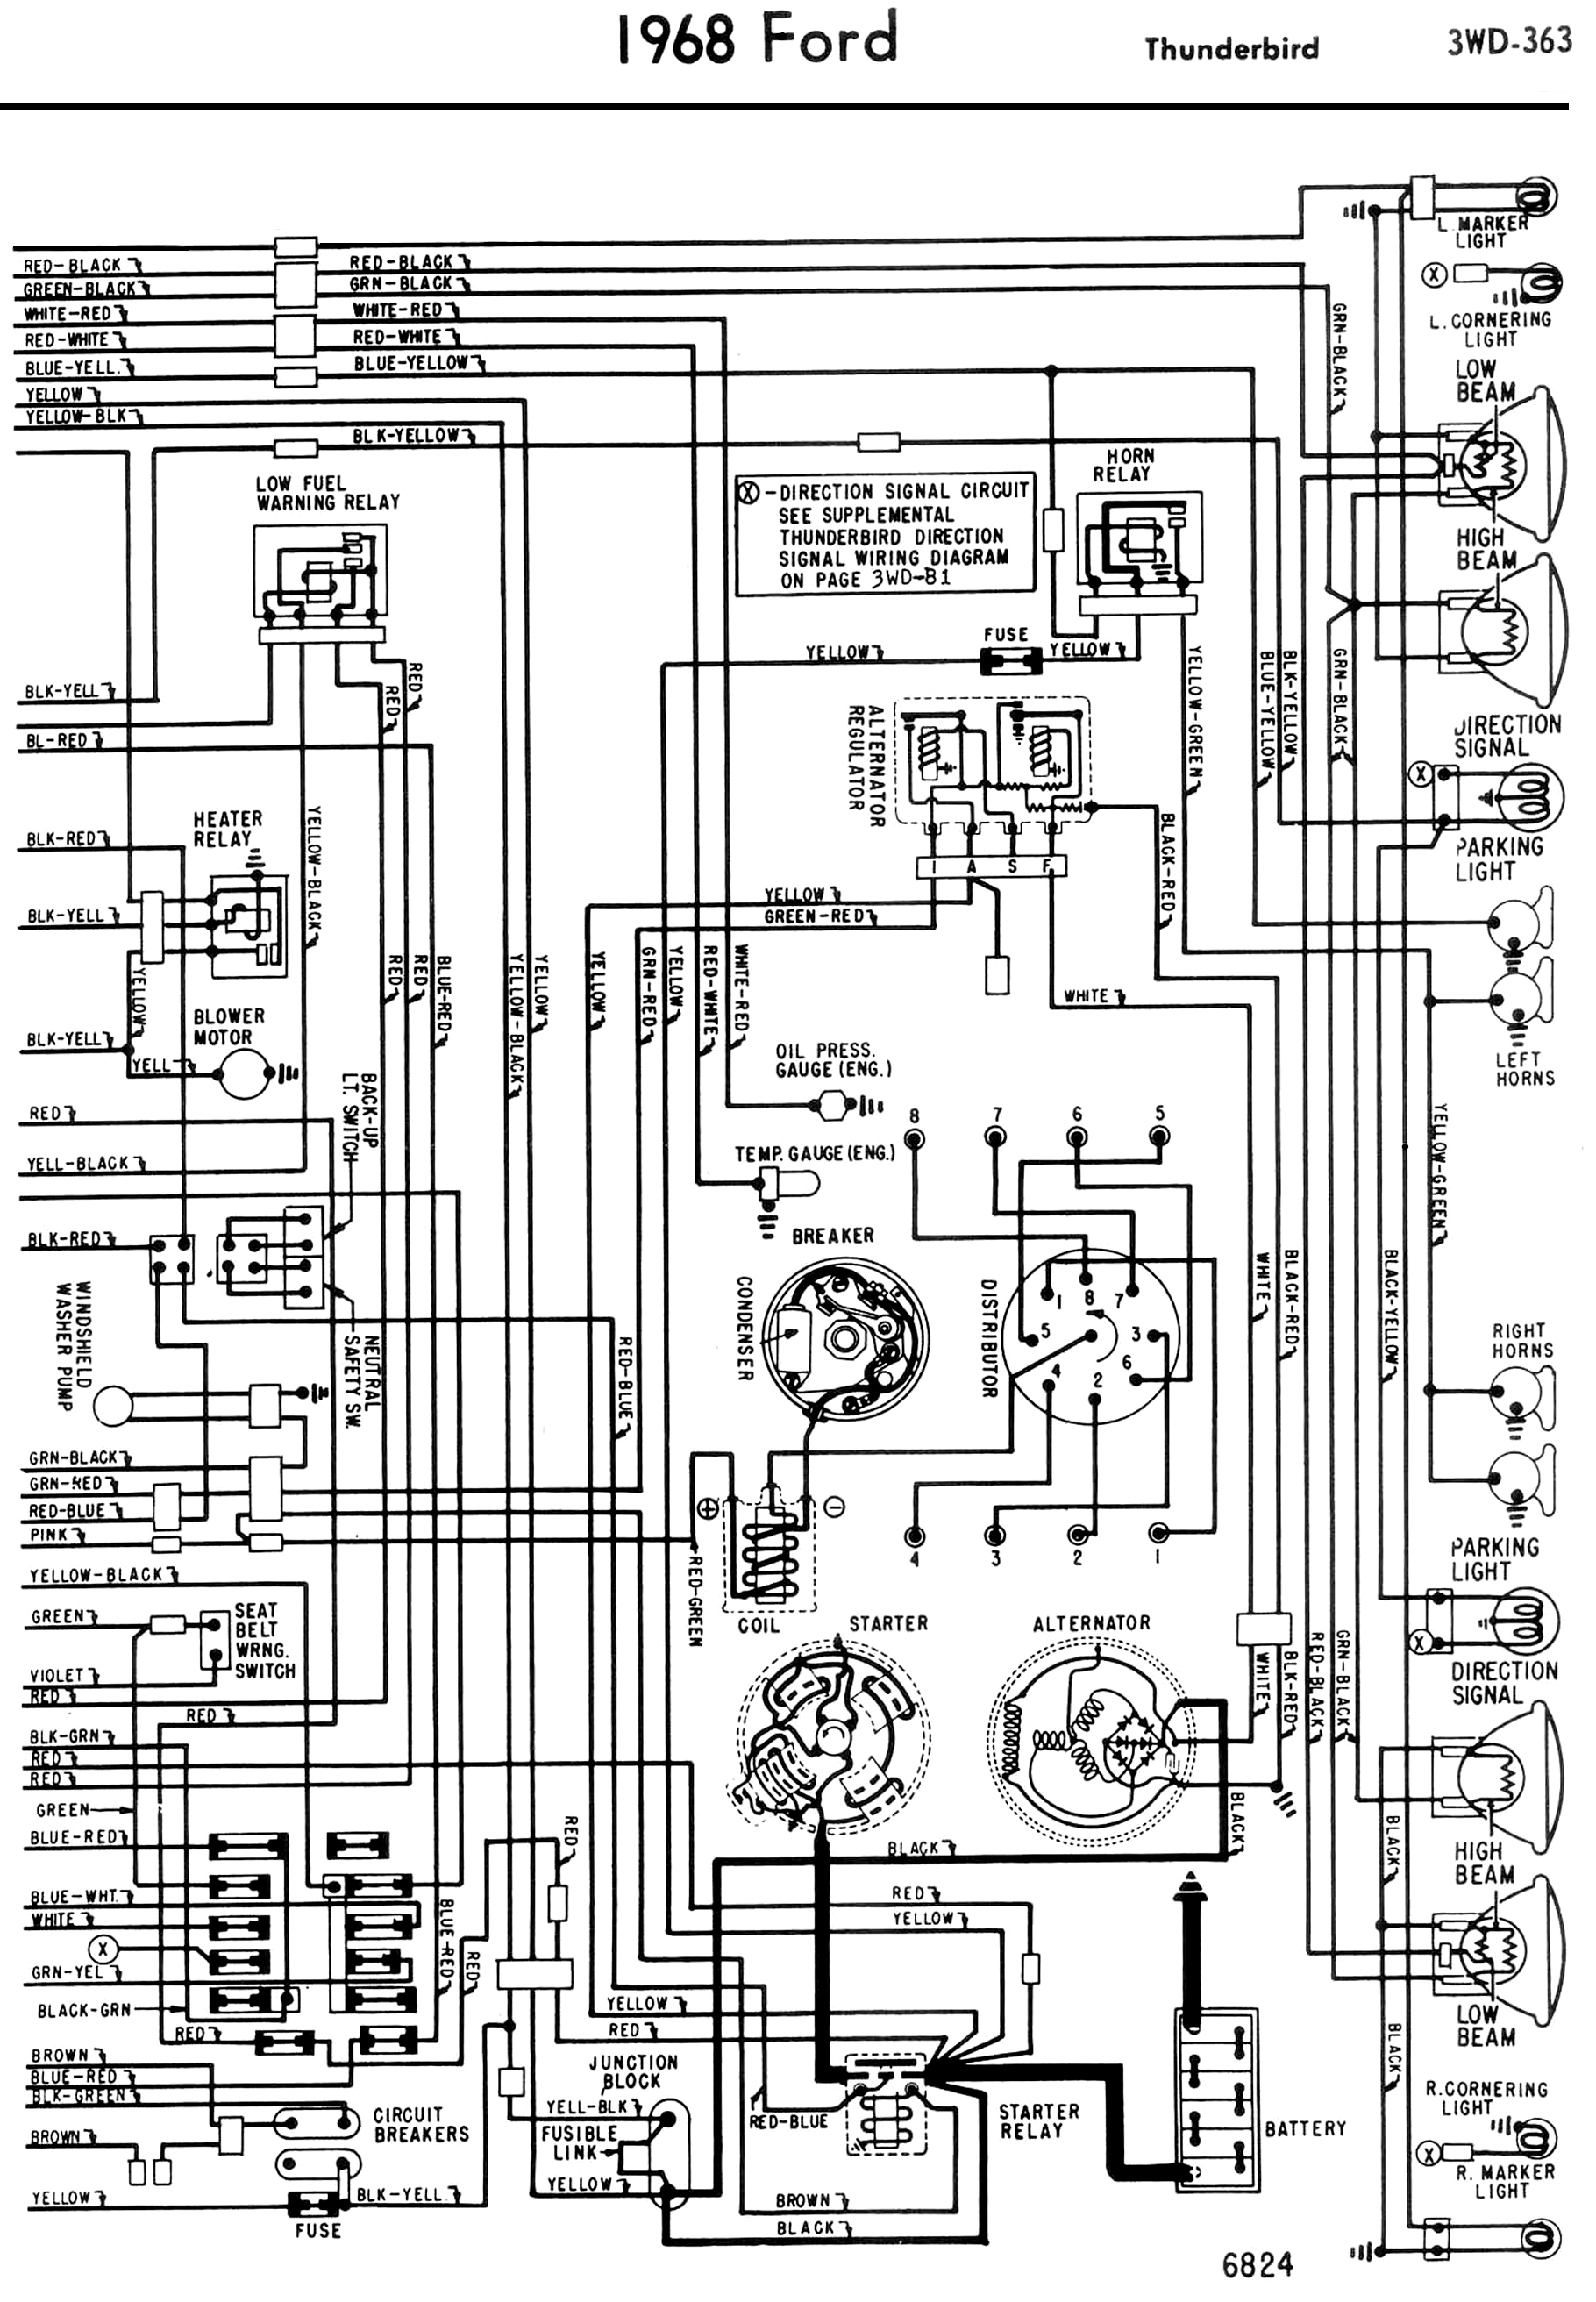 2003 Thunderbird Fuse Box Wiring Library 1969 Ford F100 1958 68 Electrical Schematics 1962 Generator Light Diagram For